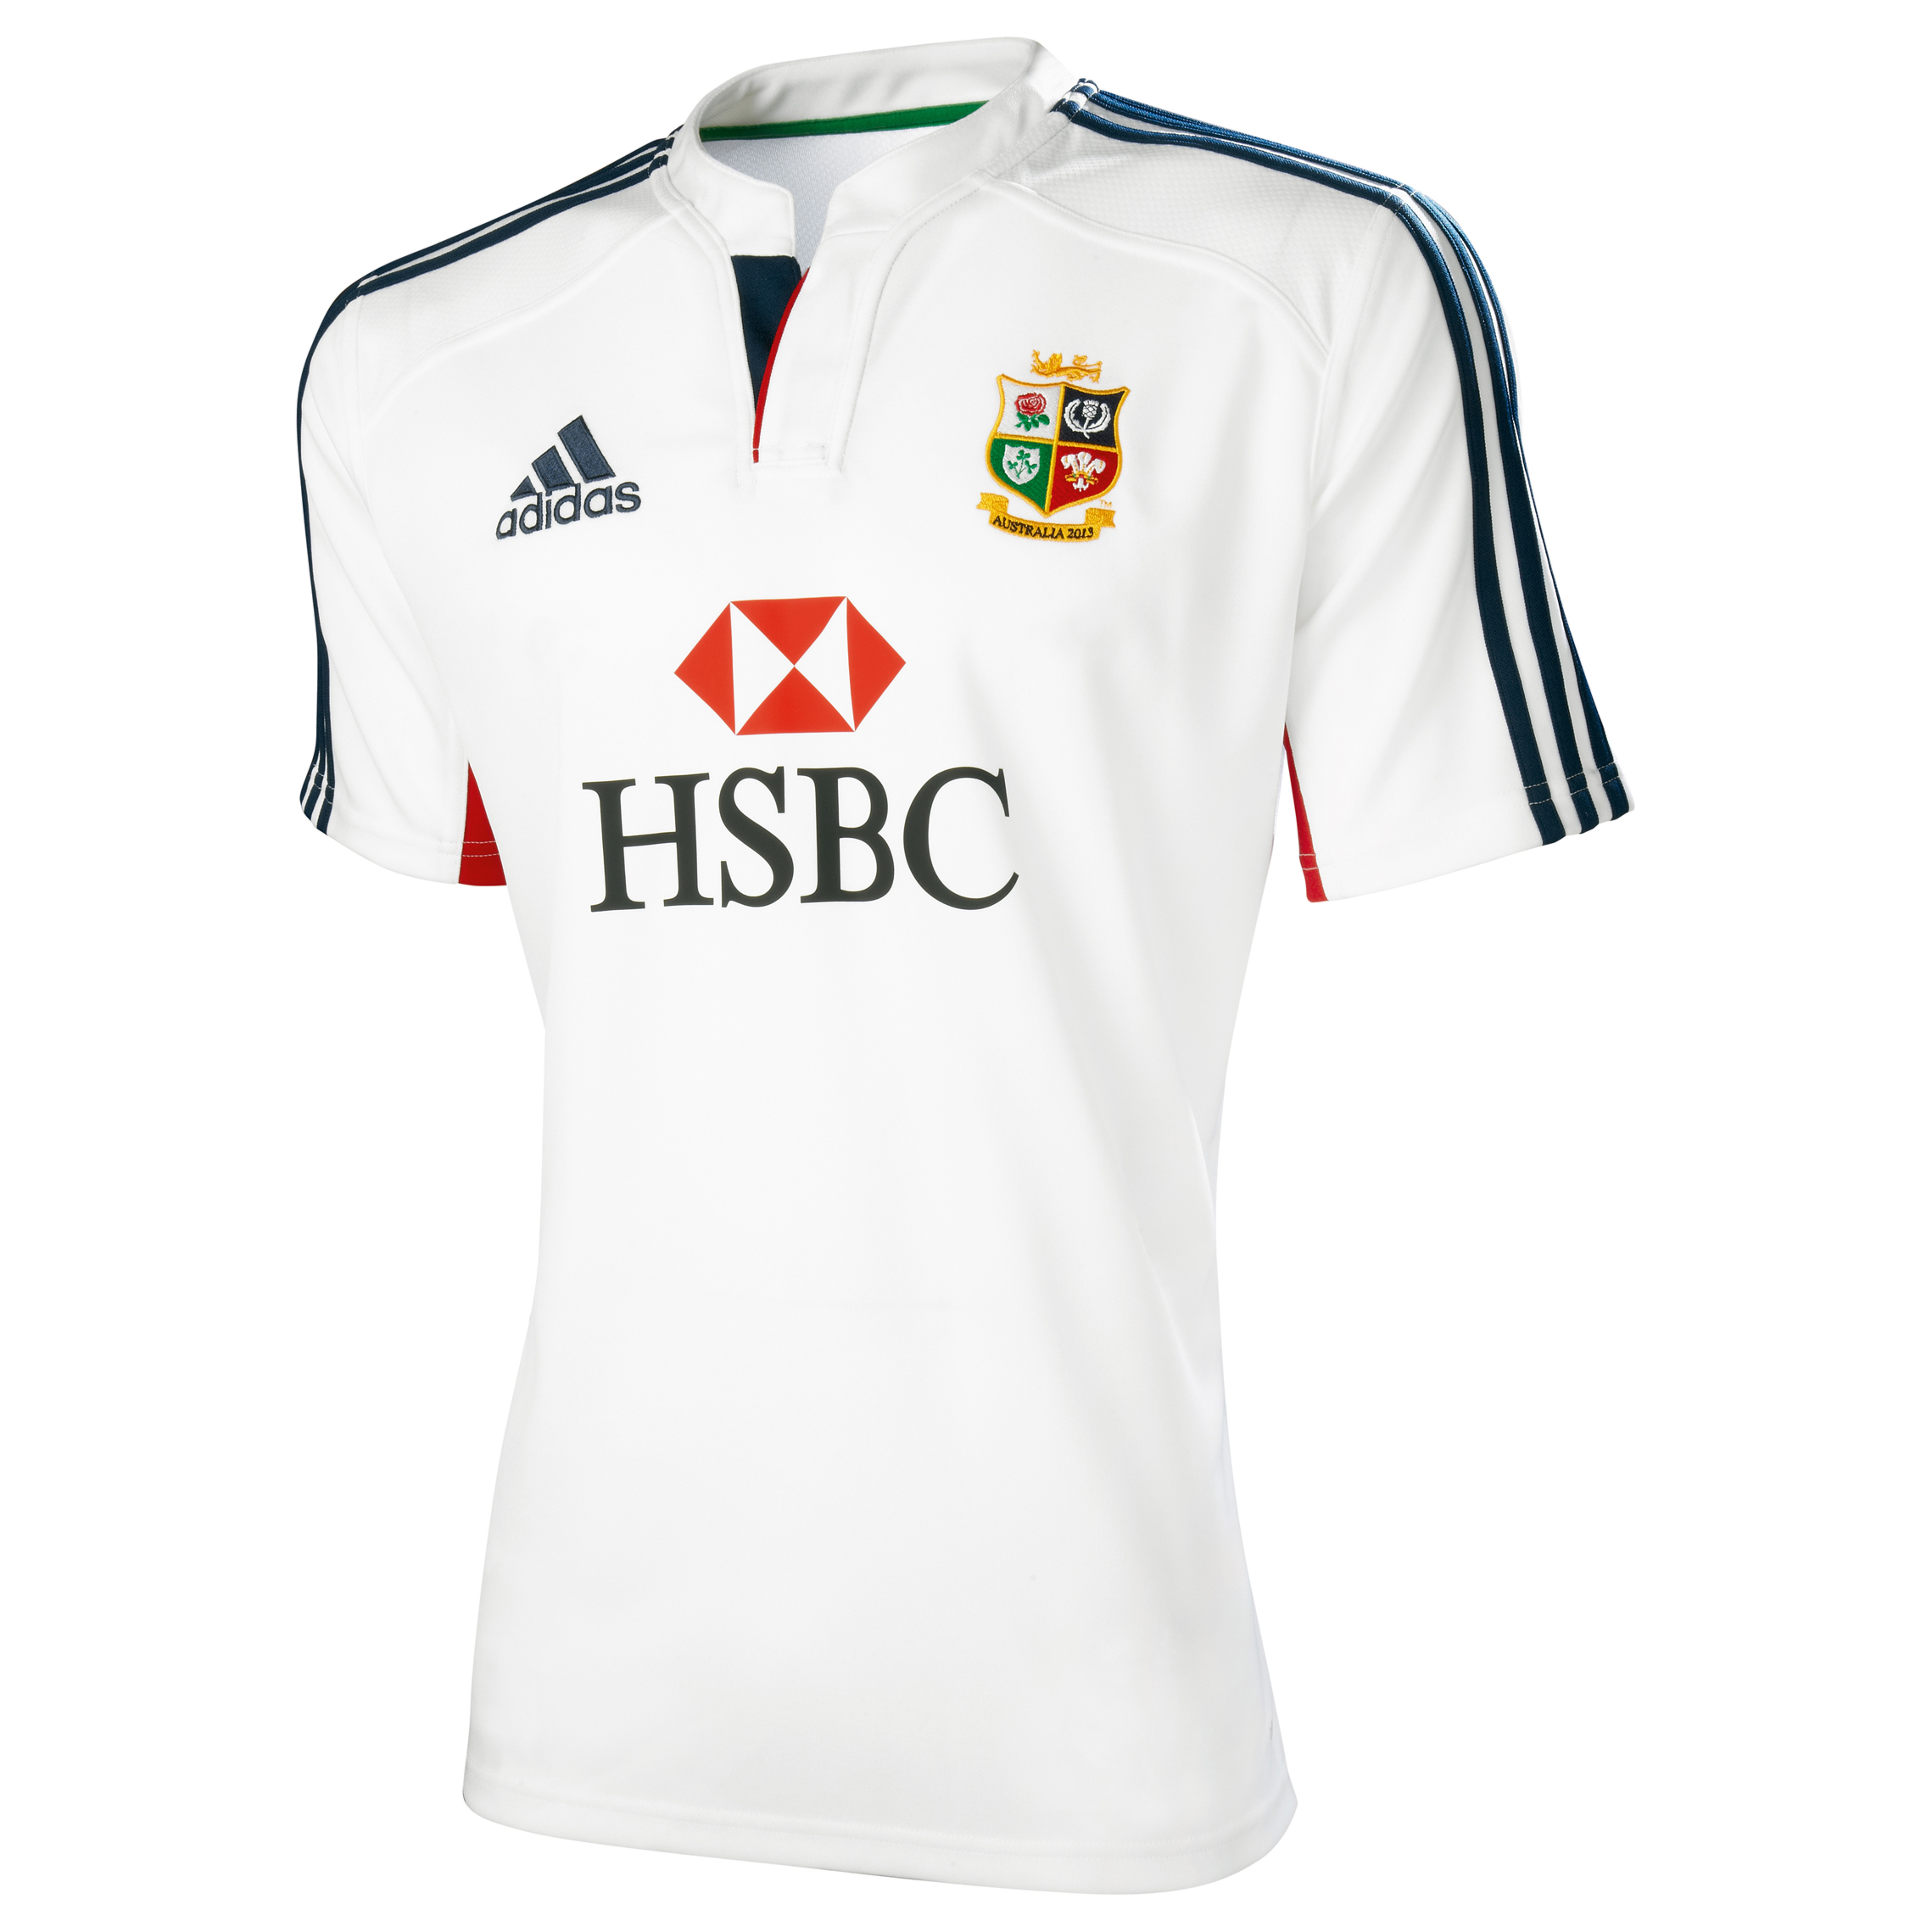 adidas British and Irish Lions Training Top - White/Collegiate Navy